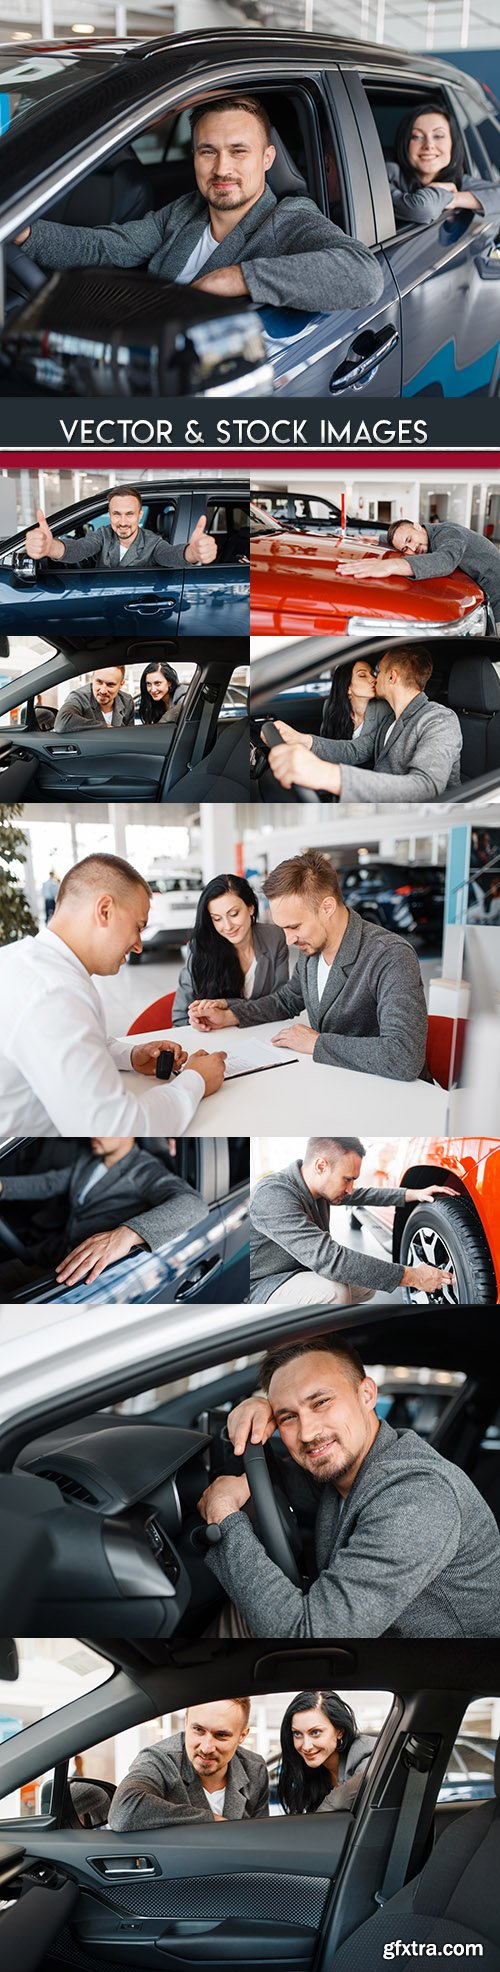 Purchase of car and insurance in dealer center